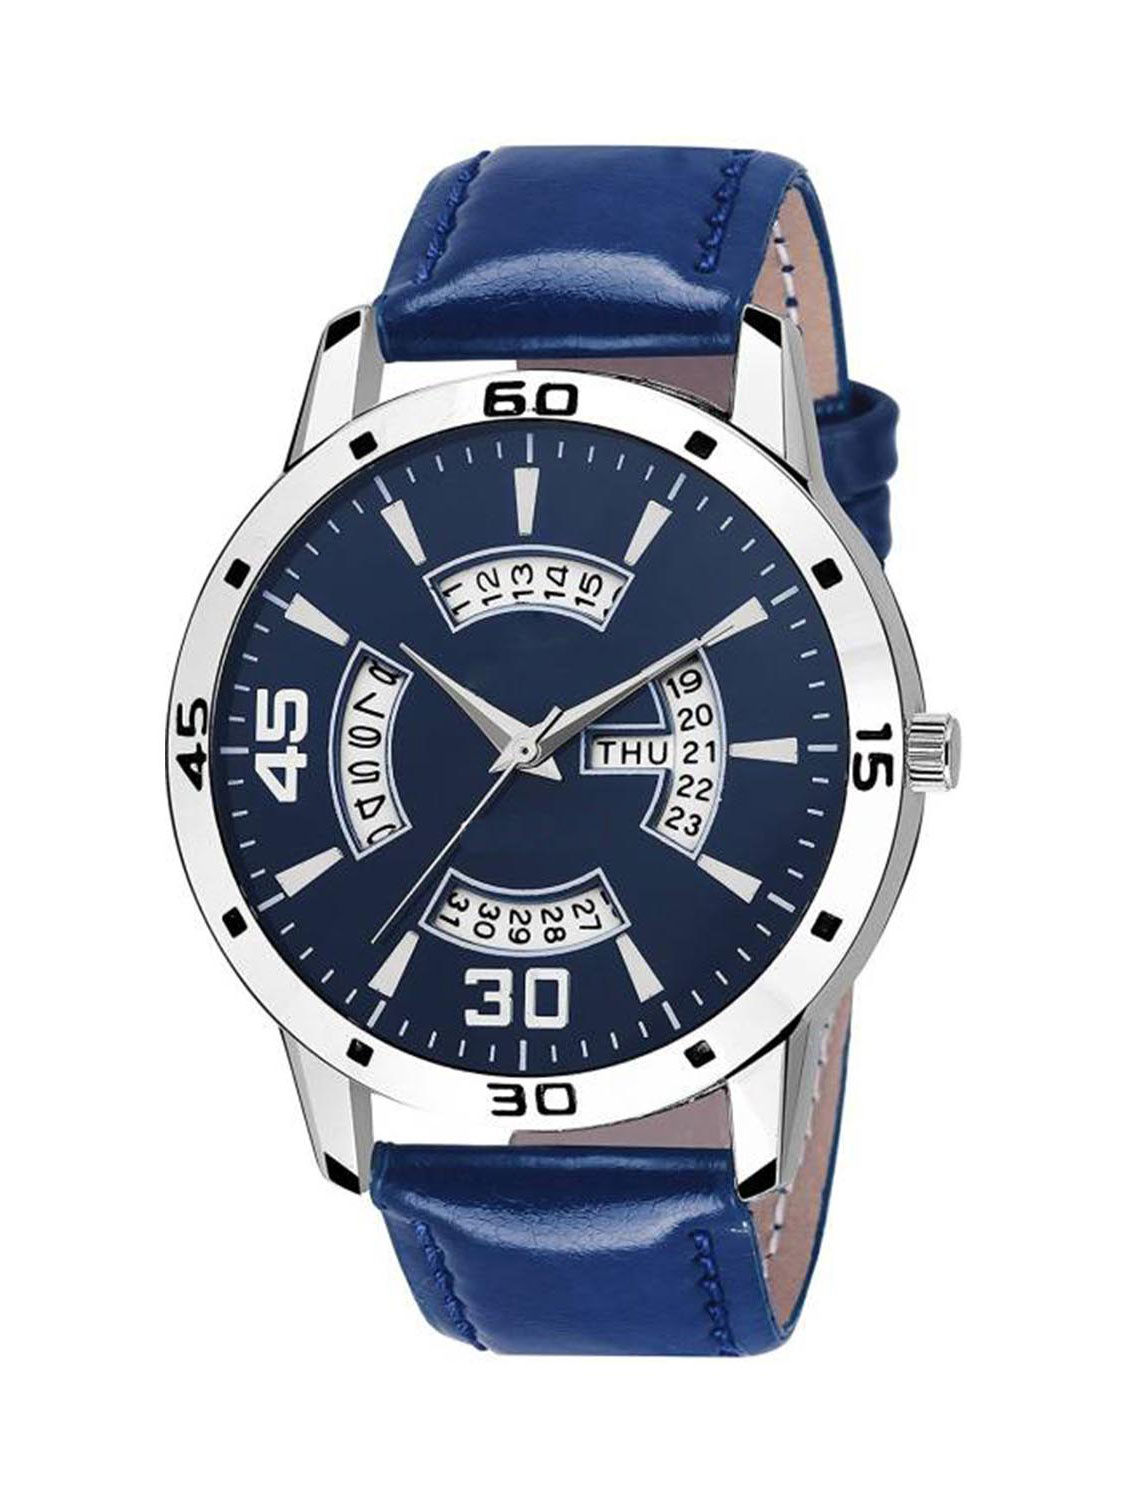 FX435 Blue Band Analogue Mens Watch